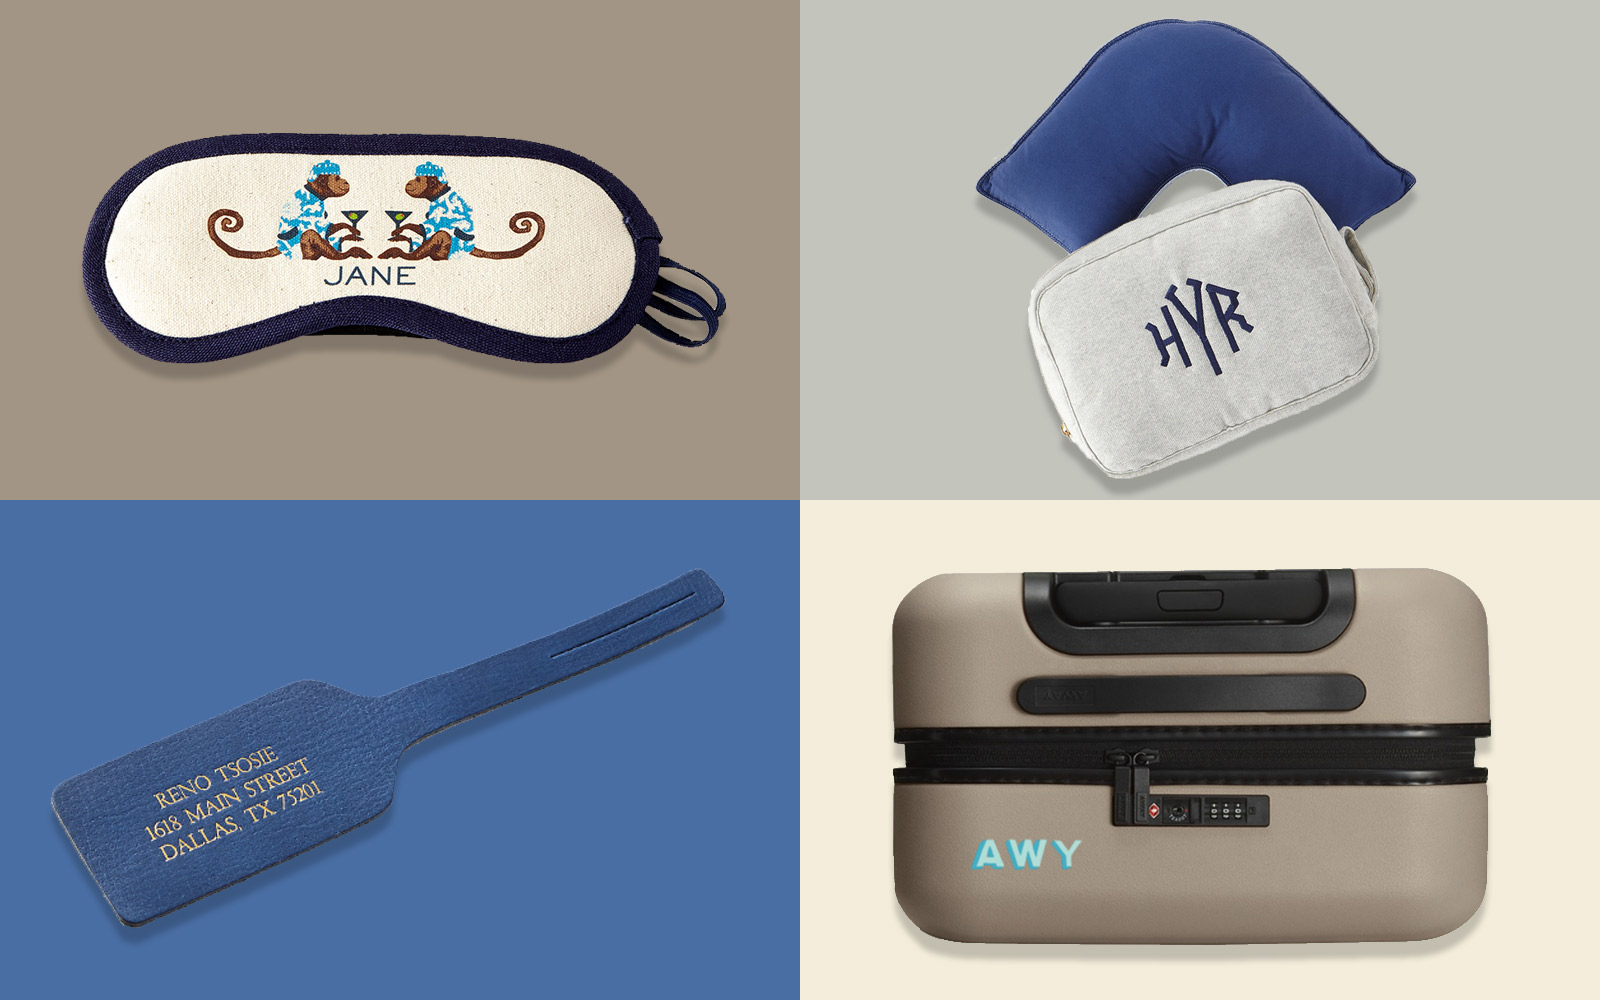 The Best Personalized and Monogrammed Travel Accessories